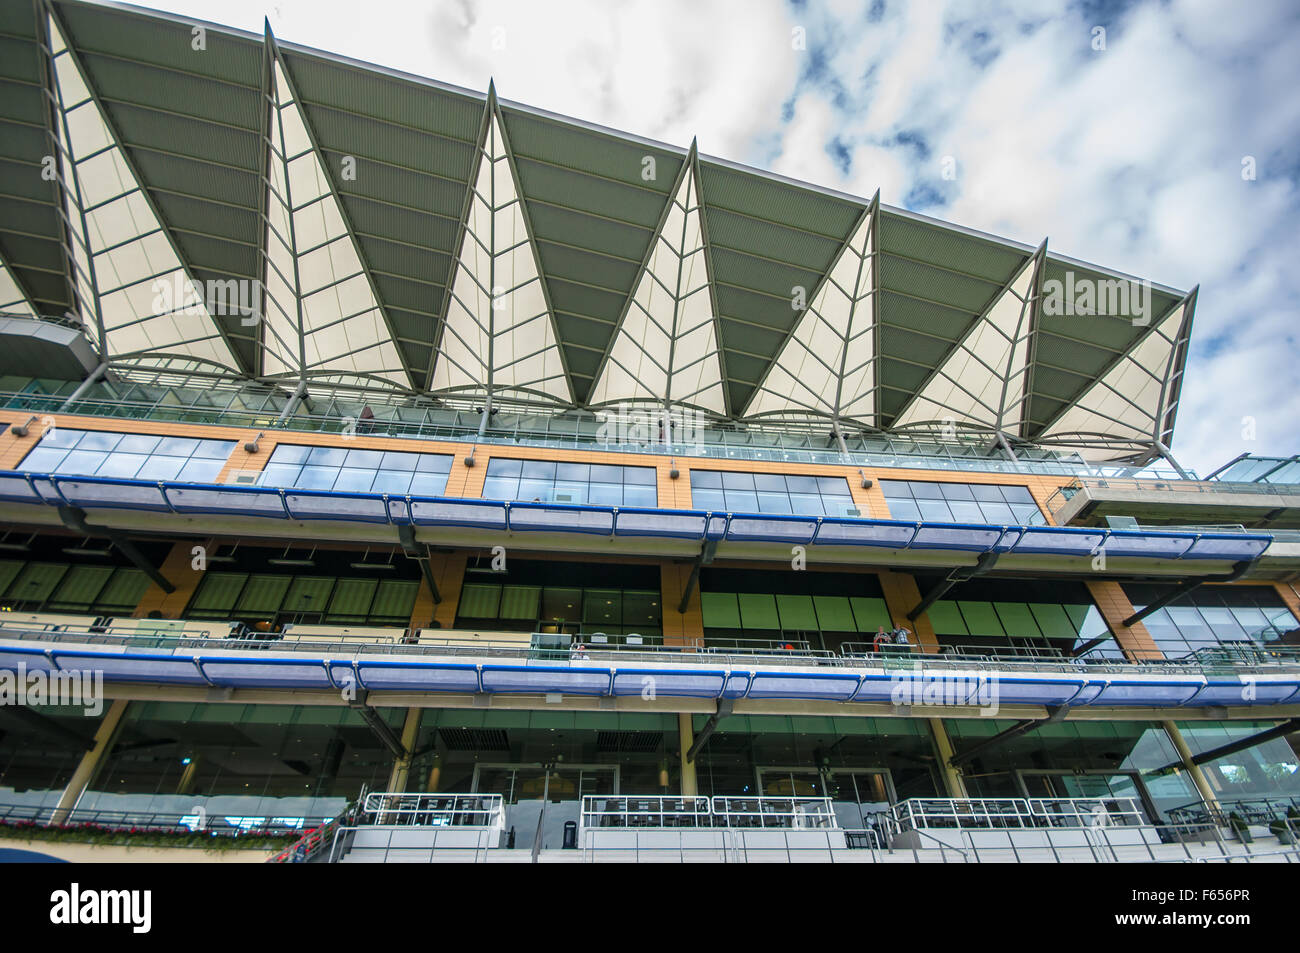 Ascot Racecourse is a British racecourse, located in Ascot, Berkshire, England, which is used for thoroughbred horse - Stock Image